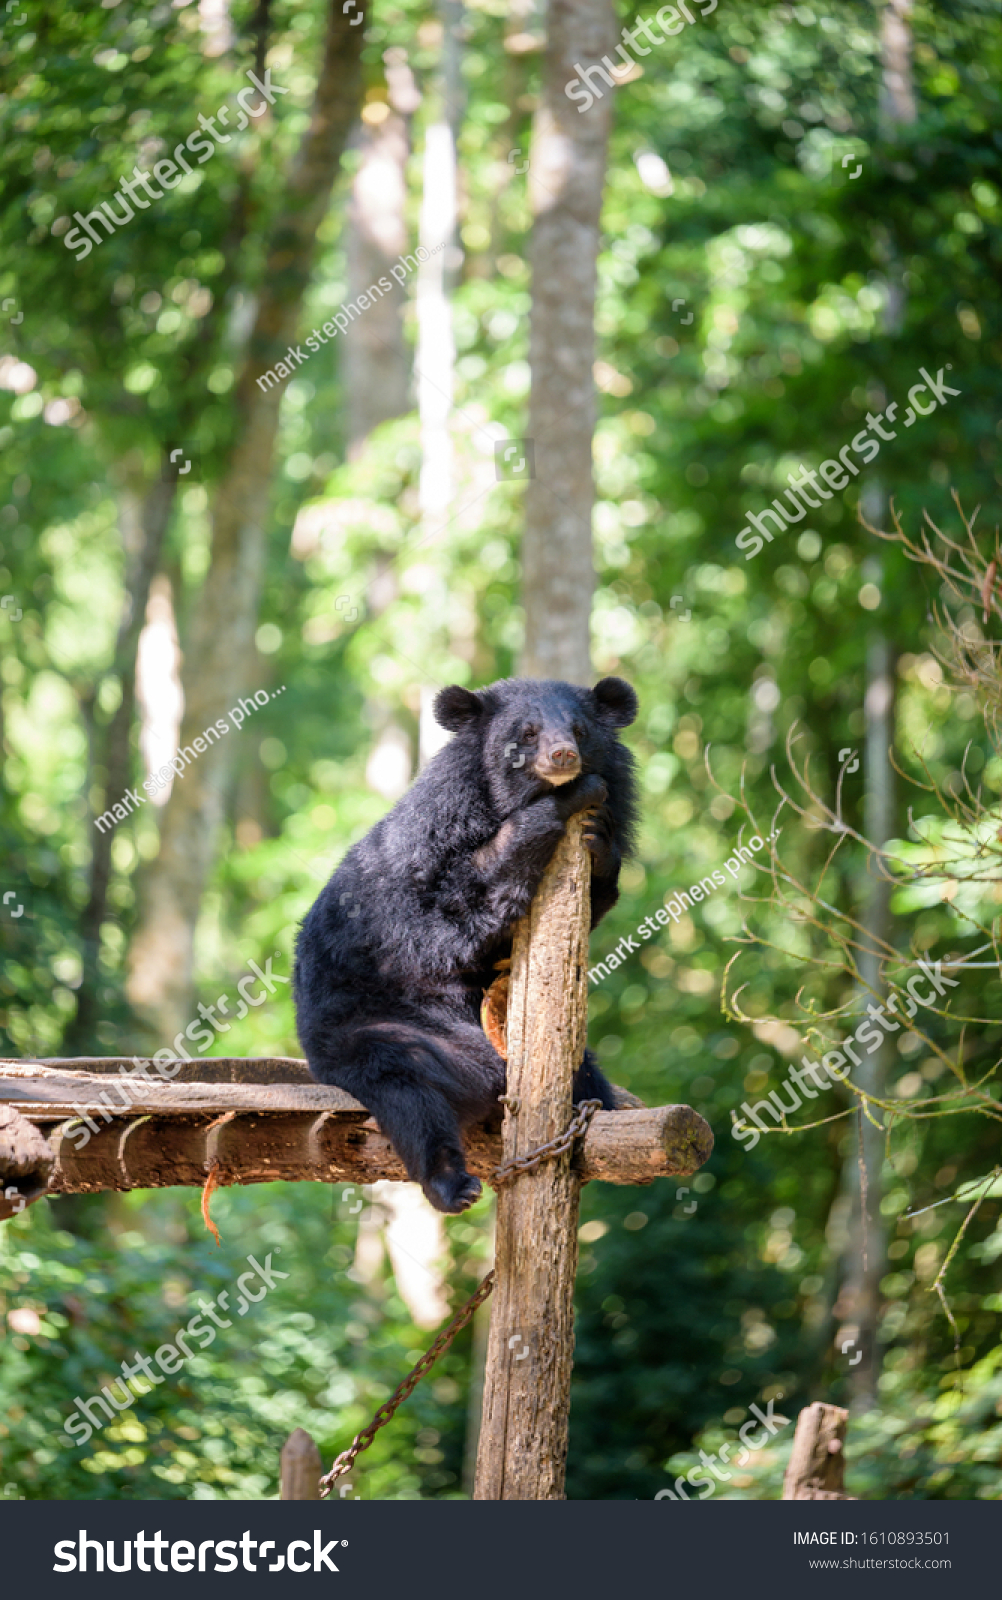 stock-photo-a-young-asiatic-black-bear-o